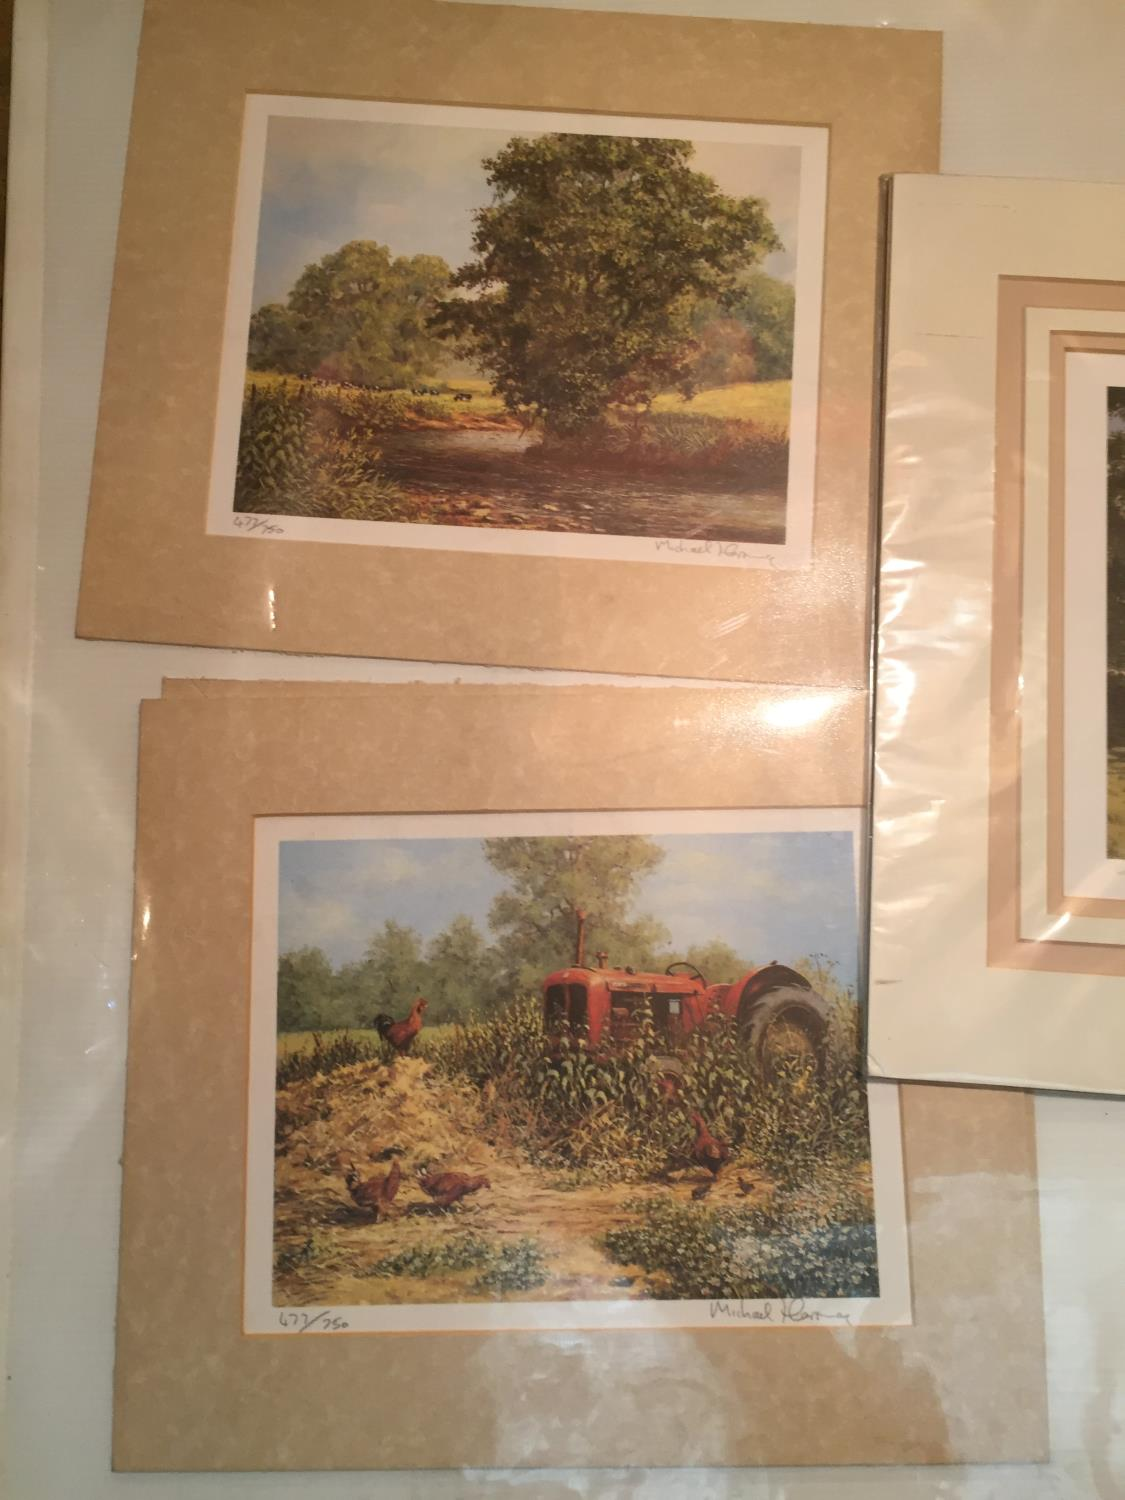 THREE MOUNTED SIGNED PRINTS OF FARM SCENES IN A HARDBACK PROTECTIVE FOLDER - Image 6 of 12